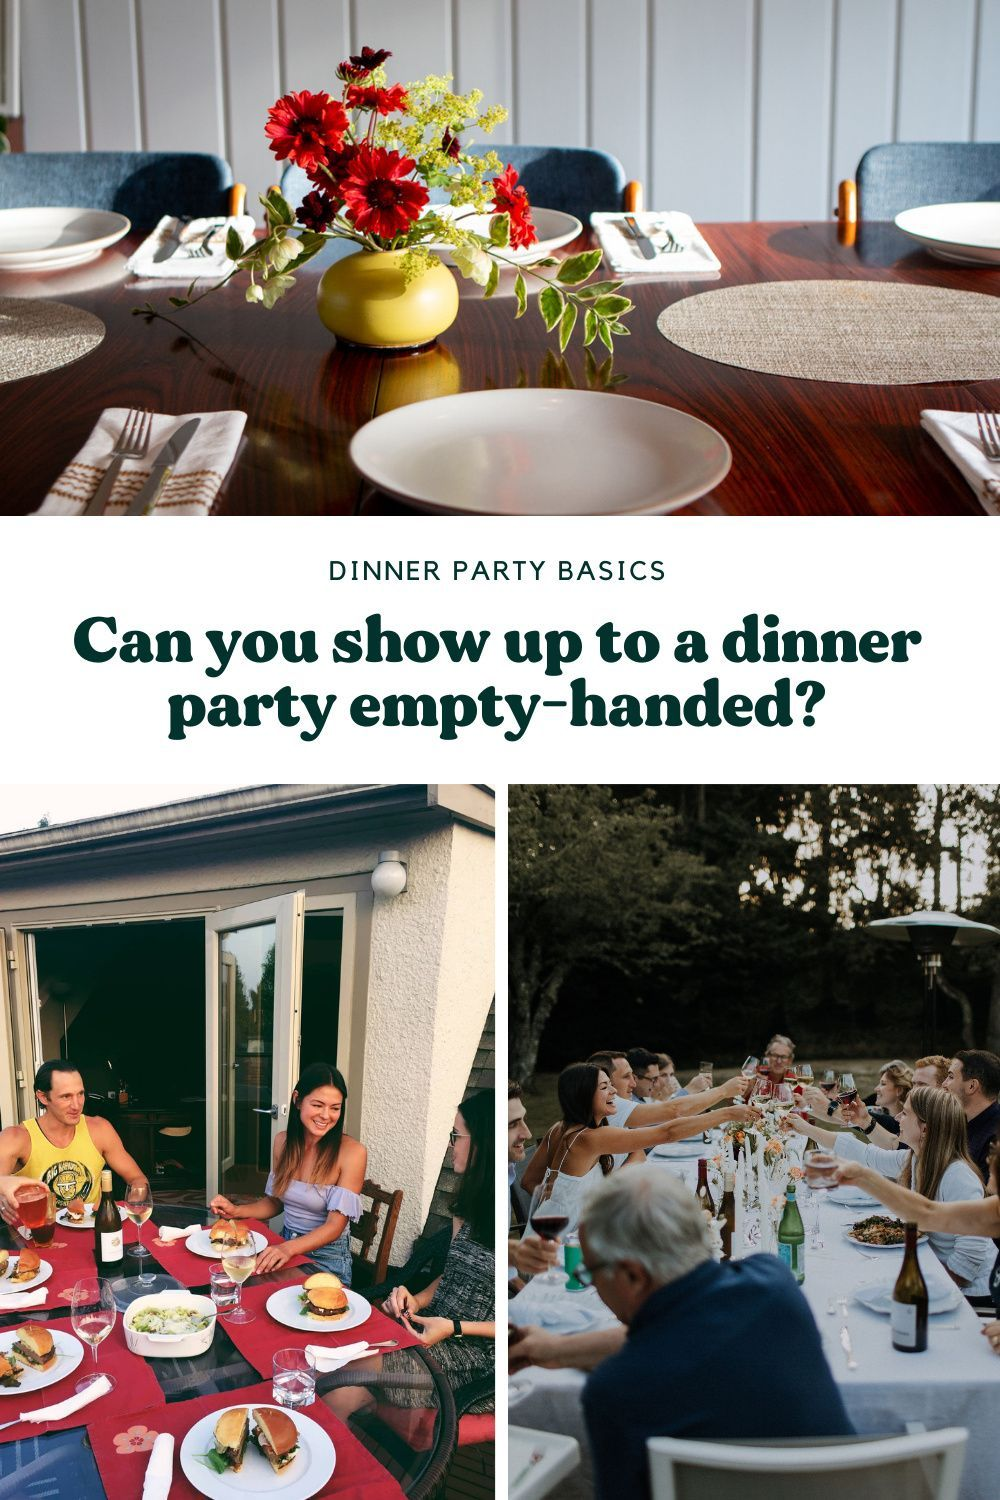 Find out if and when it's appropriate to show up to a dinner party empty-handed, and, what to bring when it's not so cool do so. More at FeedMyFriends.com | #dinnerpartyetiquette #diningetiquette #hostessgifts #hostgifts #givebettergifts #gatherbetter #artofgathering #dinnerparty #howtobeagoodguest #feedmyfriends